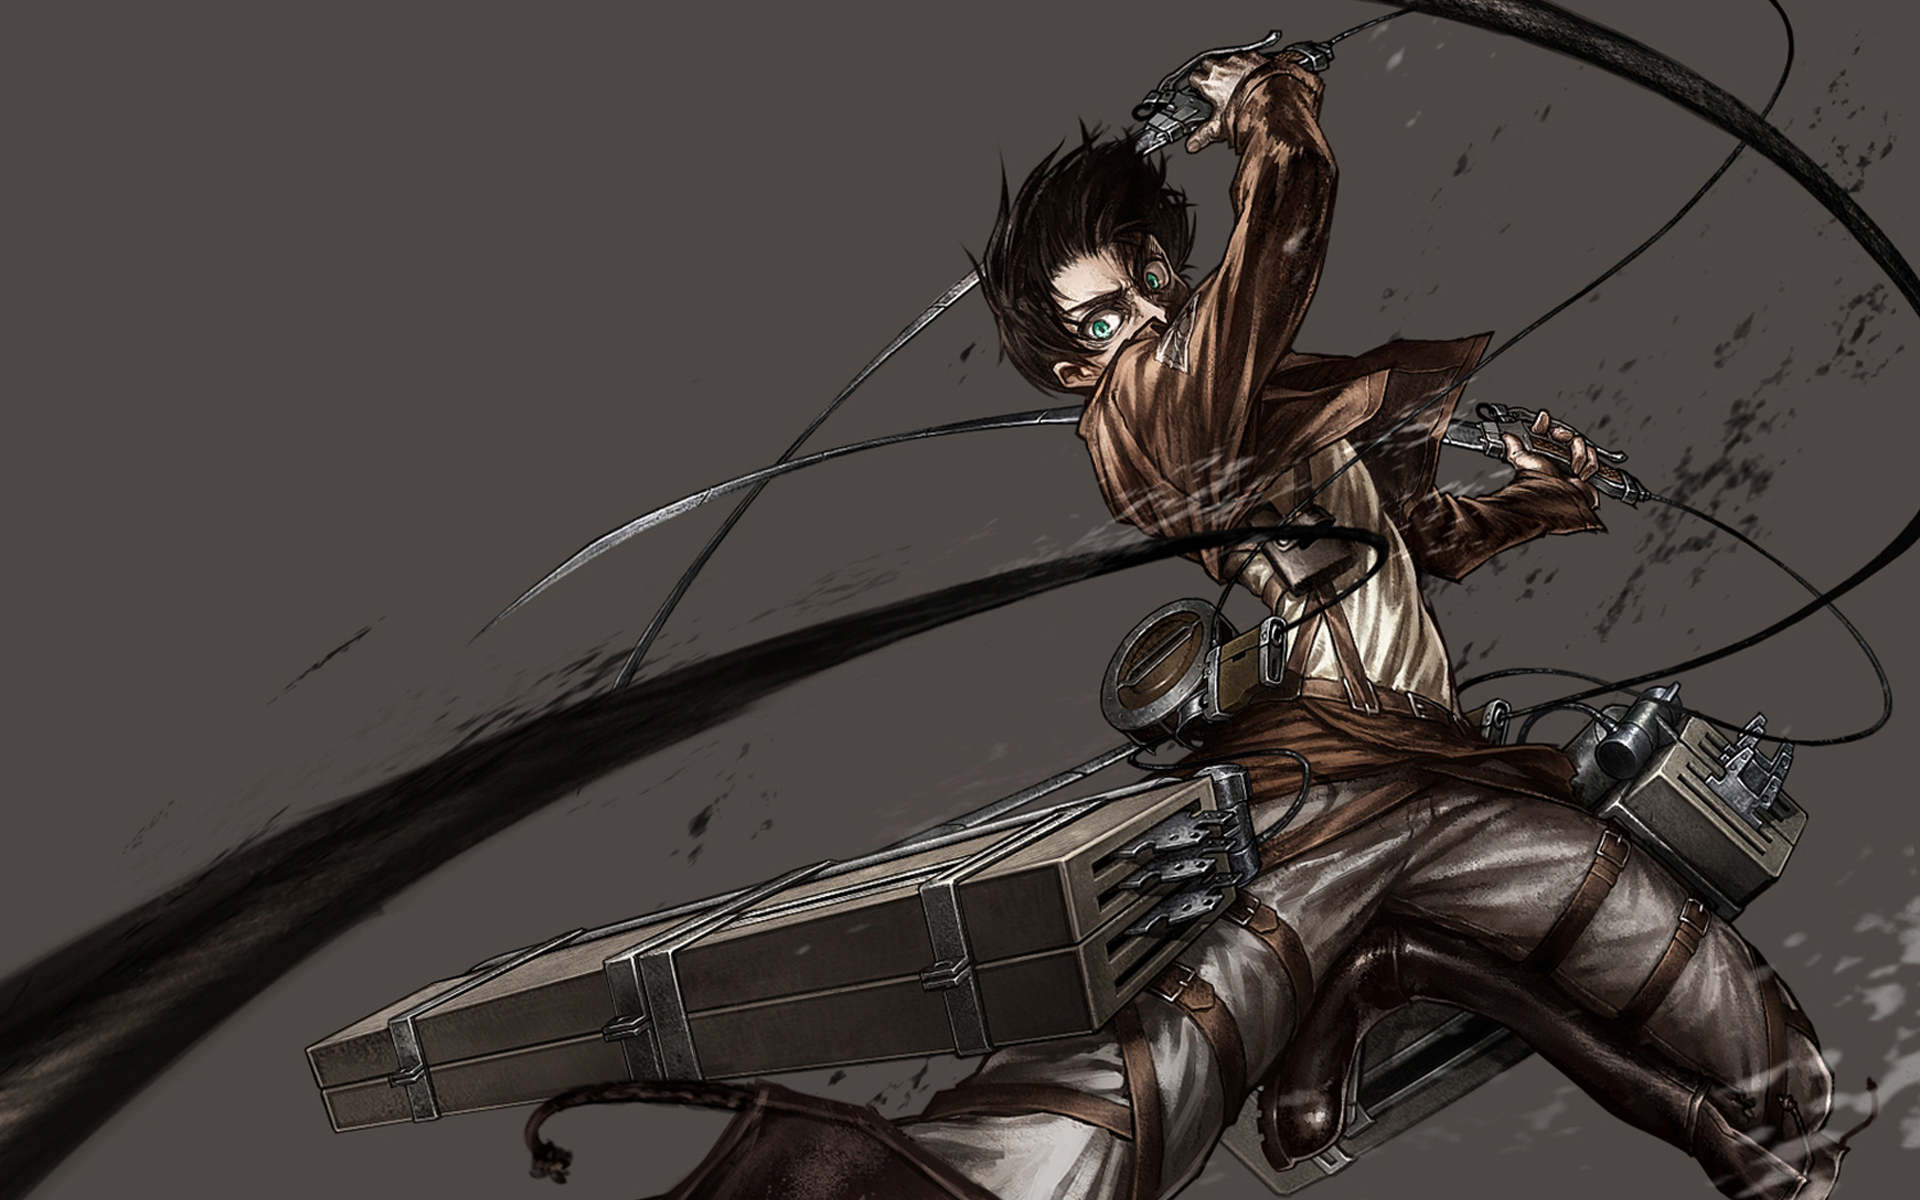 Anime Wallpaper 4k Attack On Titan Anime Wallpapers